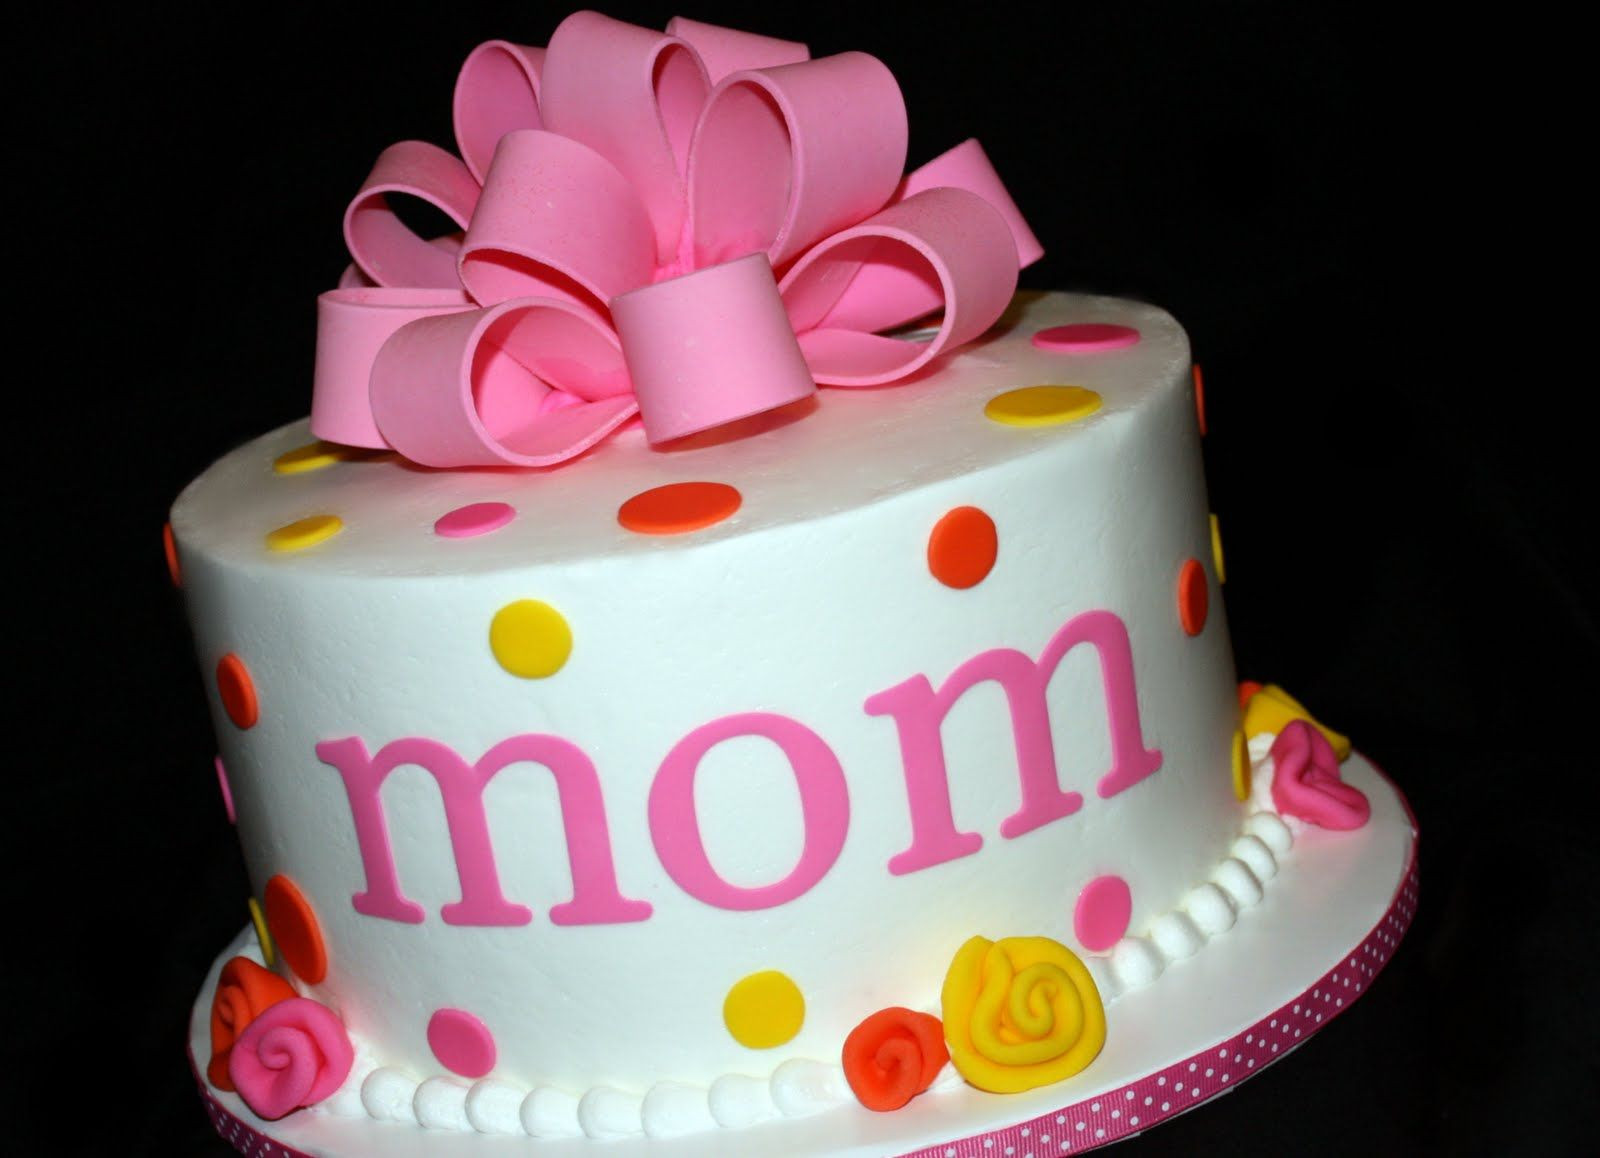 Best ideas about Birthday Cake For Mother . Save or Pin fun cakes Mom Birthday Cake fun cakes Now.